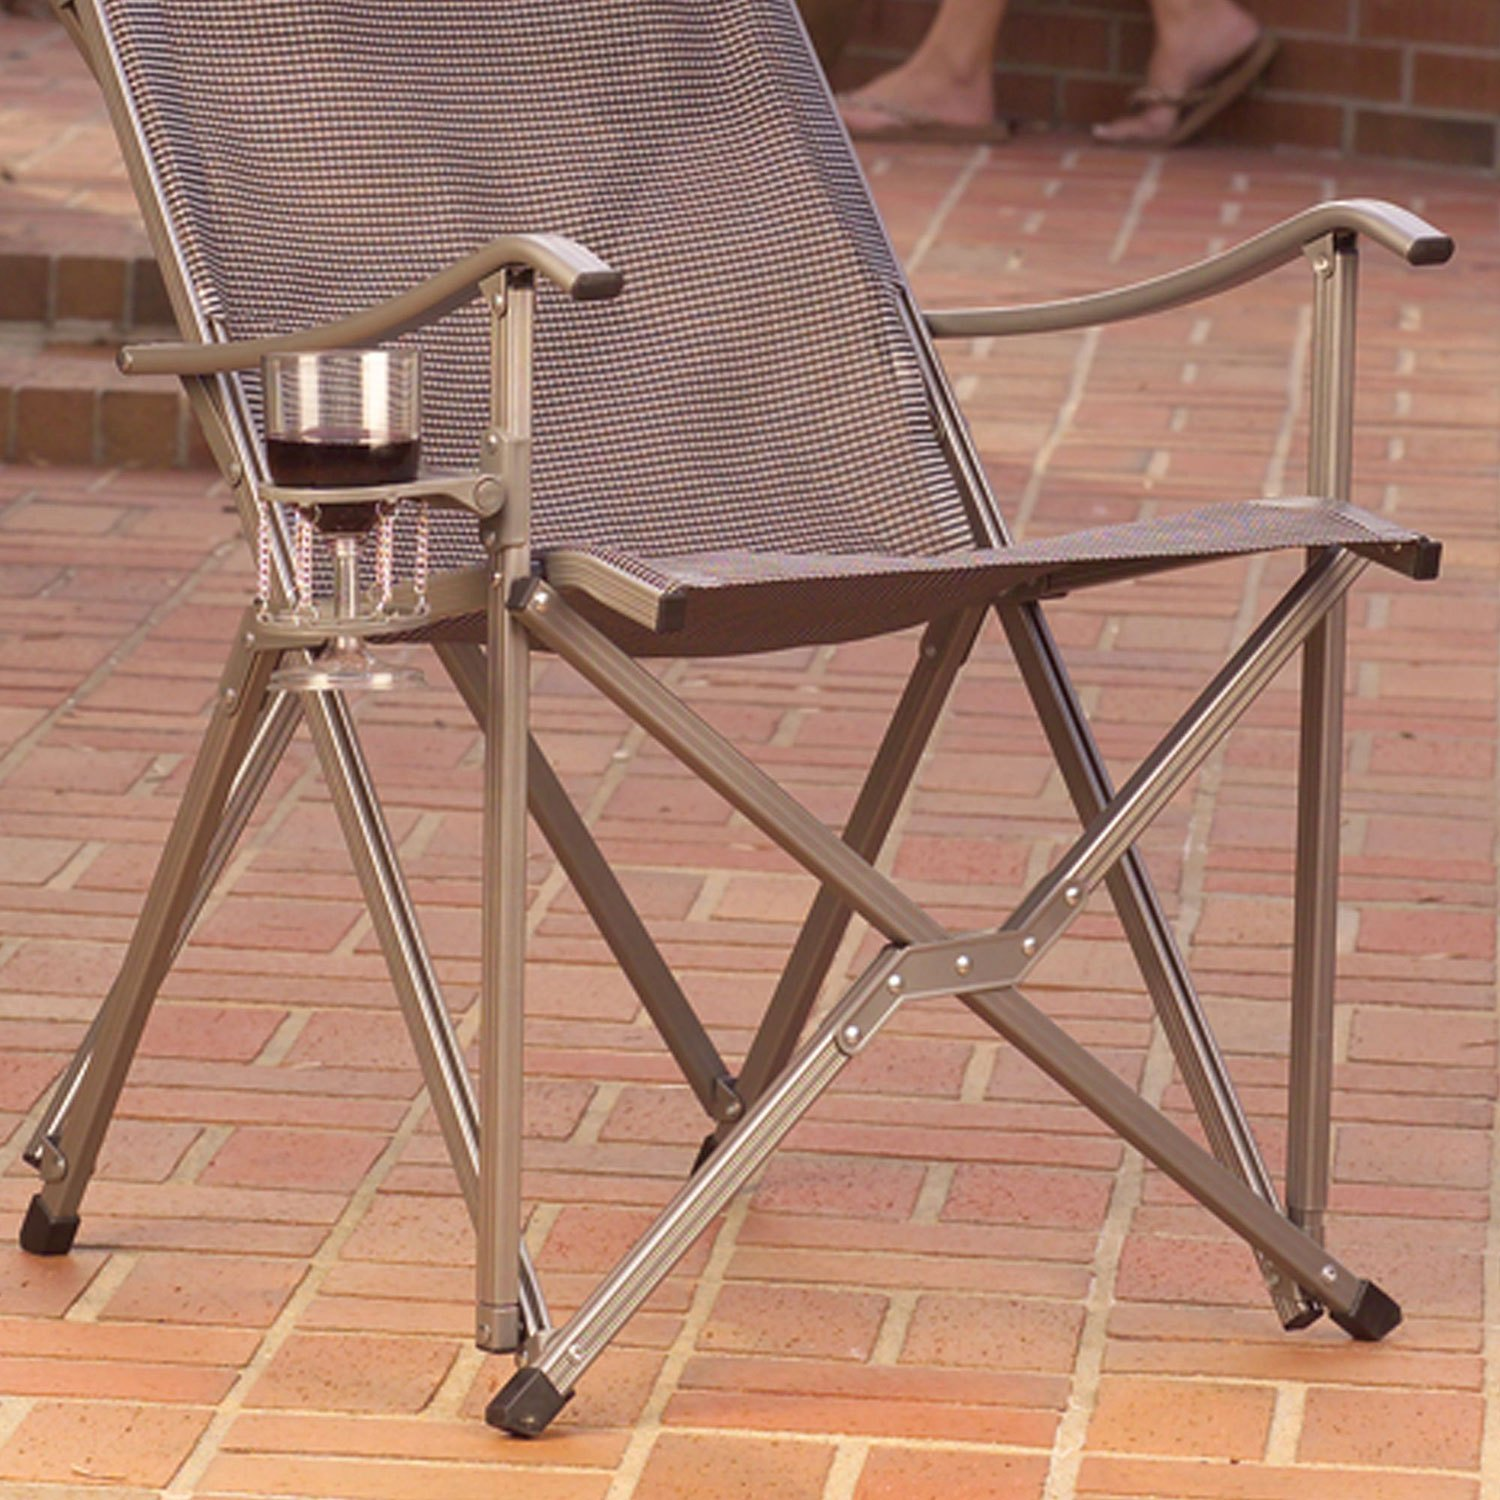 re sling patio chairs clear plastic dining nz coleman 2000020294 chair